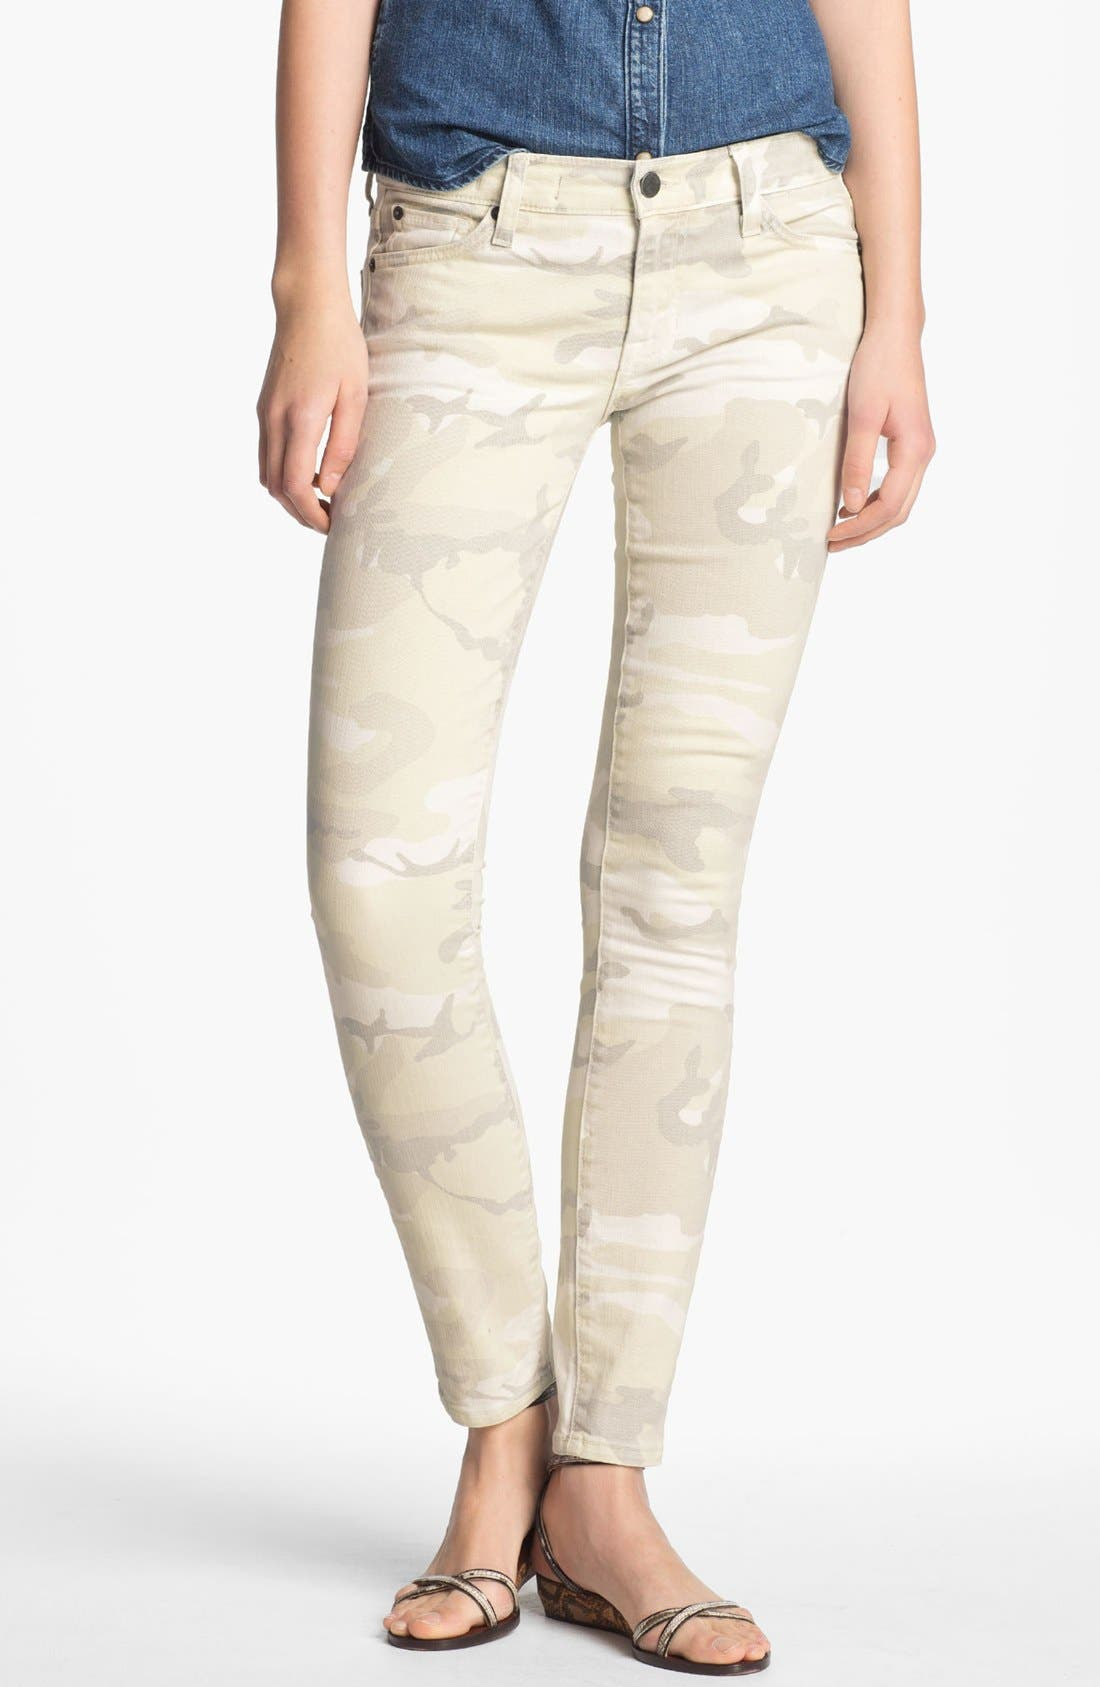 Alternate Image 1 Selected - TEXTILE Elizabeth and James 'Debbie' Camo Print Stretch Jeans